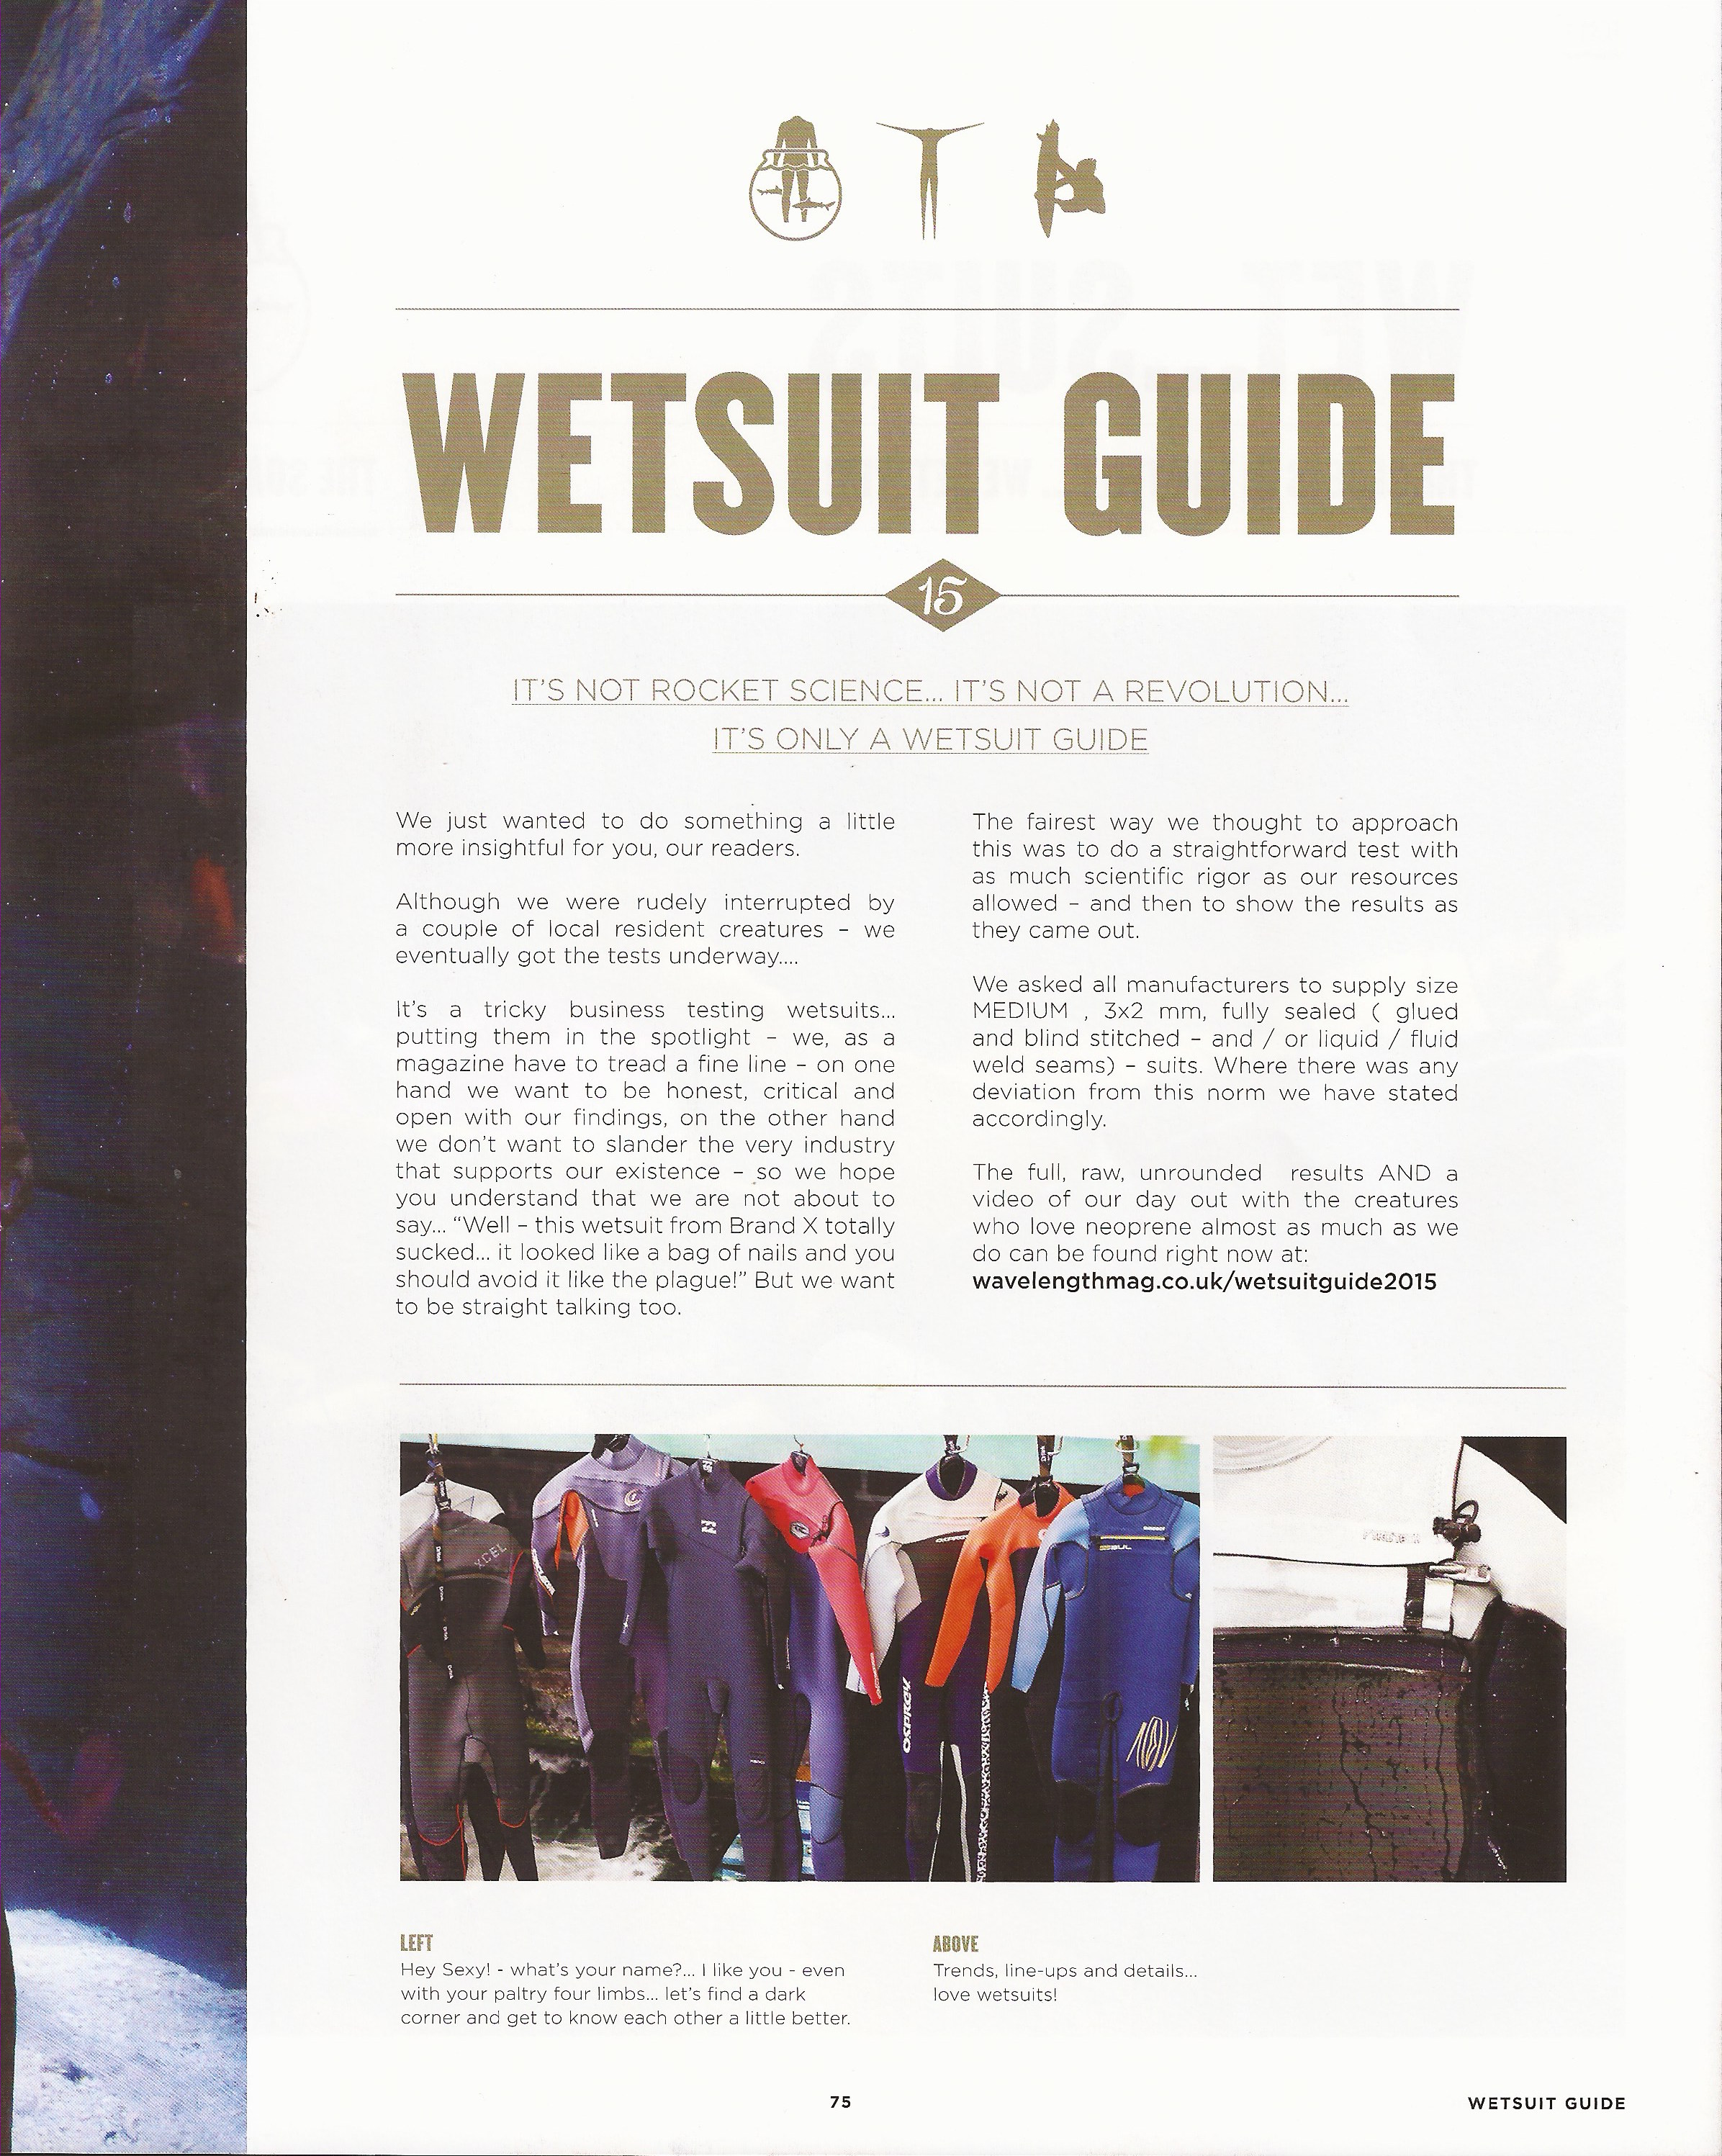 WL_Wetsuit_Guide_1